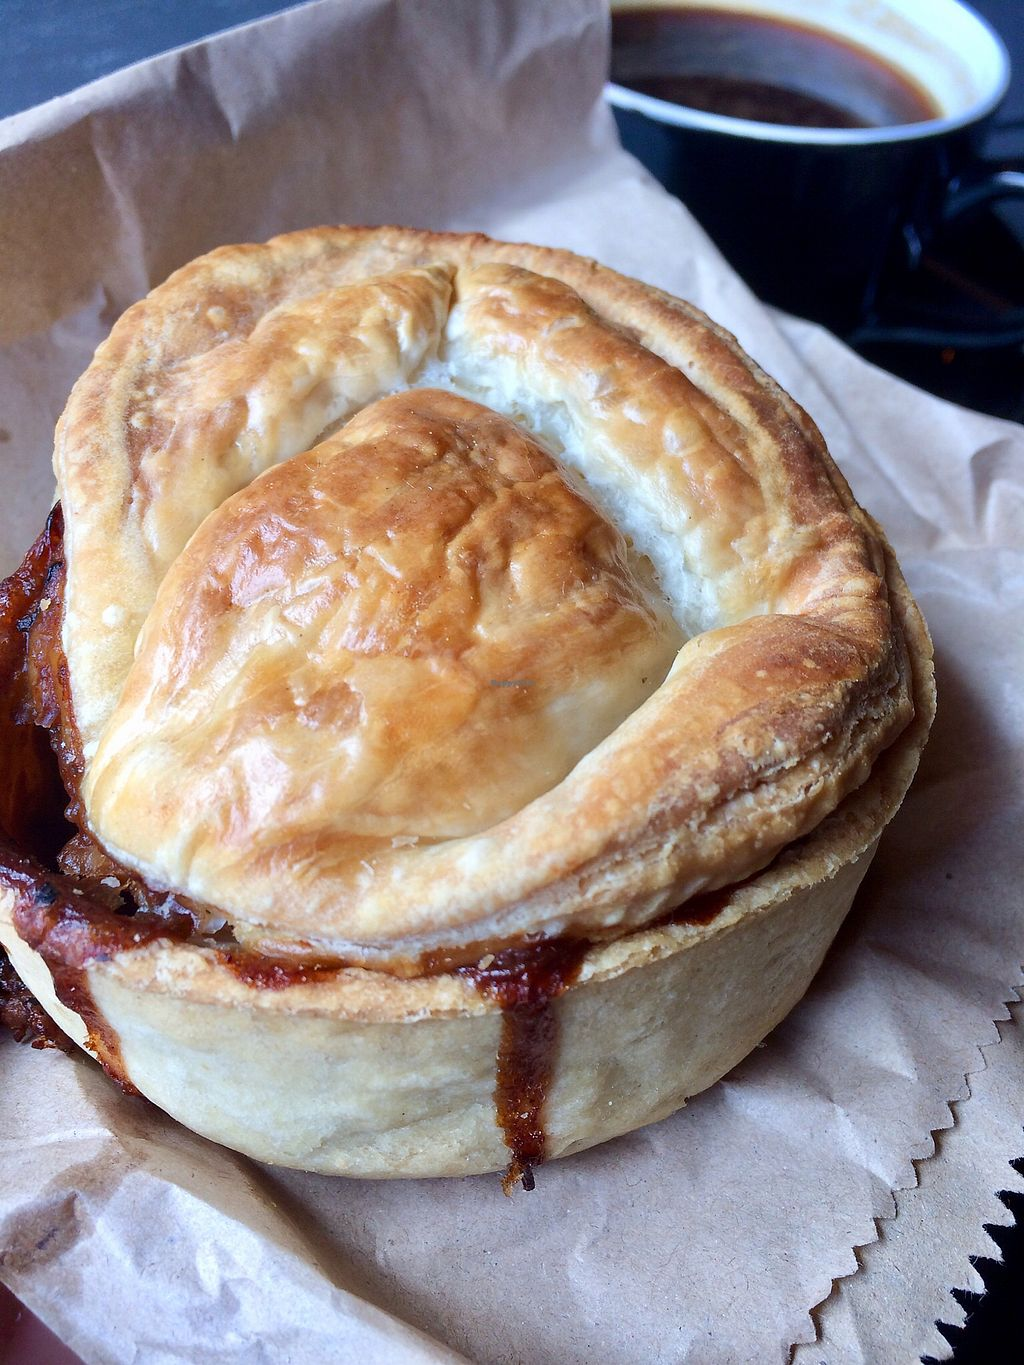 """Photo of Cool Jerk Vegan Pies  by <a href=""""/members/profile/CiaraSlevin"""">CiaraSlevin</a> <br/>Scrumptious vegan pie <br/> April 10, 2018  - <a href='/contact/abuse/image/79460/383503'>Report</a>"""